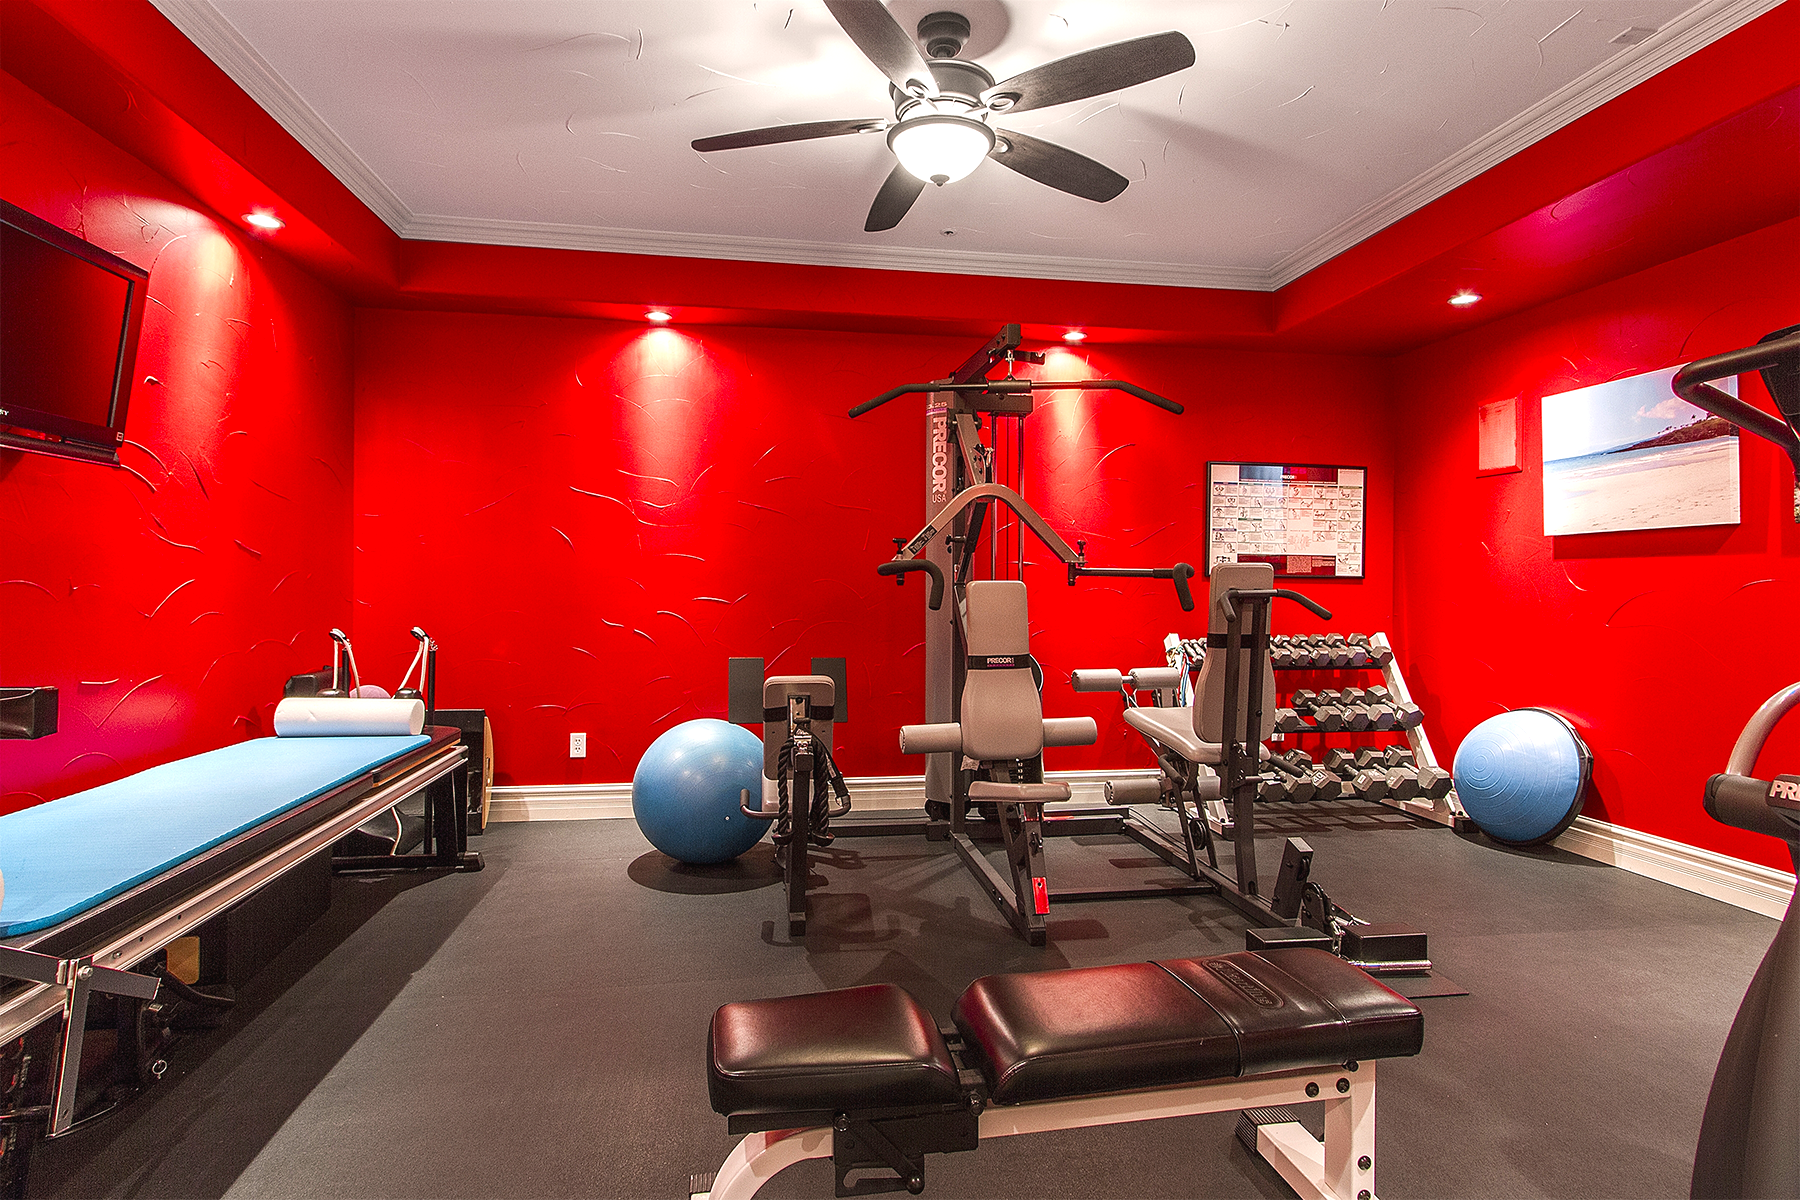 Workout-Room_1800x1200_2813141-edit.png